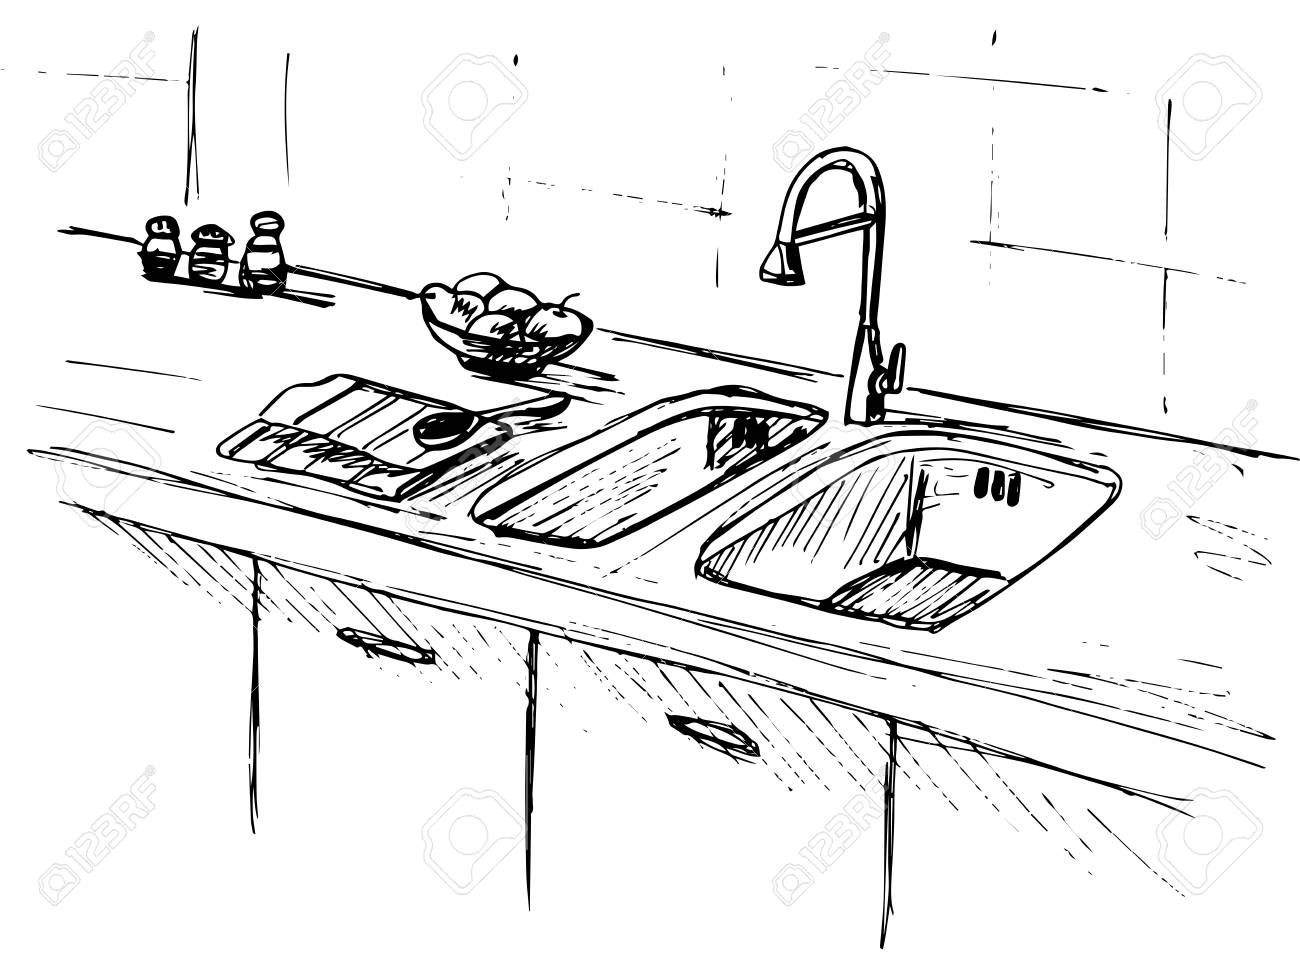 Kitchen Sink. Kitchen Worktop With Sink. The Sketch Of The Kitchen ...